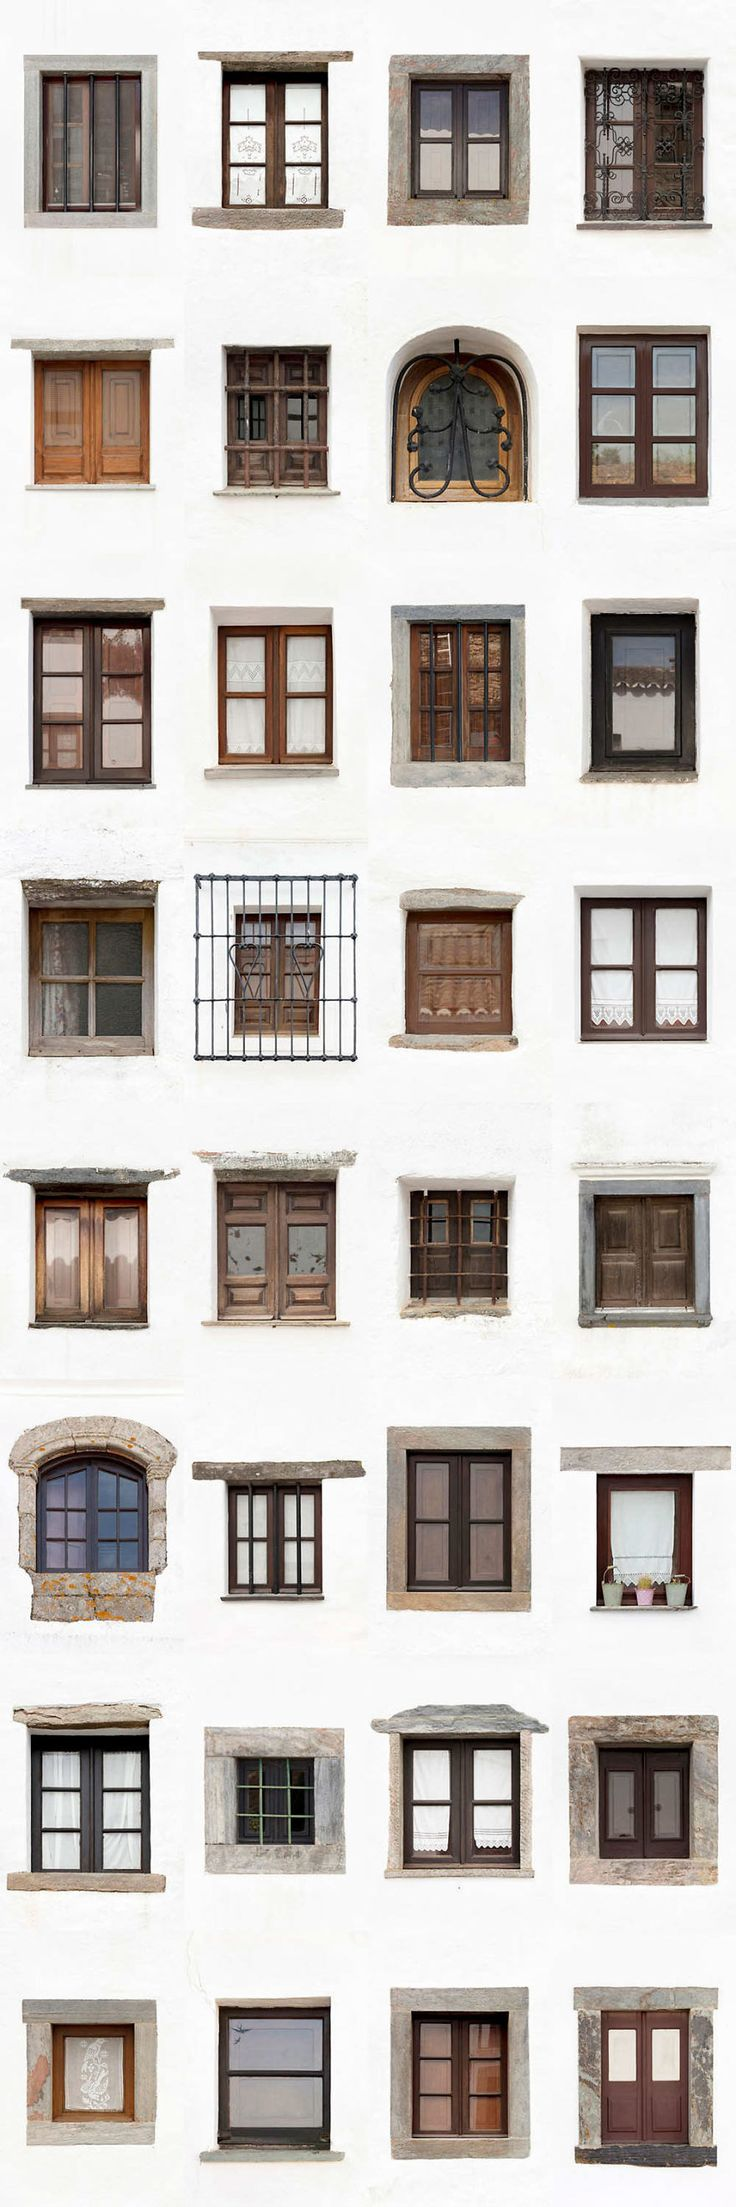 I Traveled All Over #Portugal To Photograph Windows, And Captured More Than 3200 Of Them - via BoredPanda 23-10-2017 | If you are planning a trip to Portugal, you can see which are the most beautiful cities to visit or what kind of architecture you like the most. Photo: Monsaraz